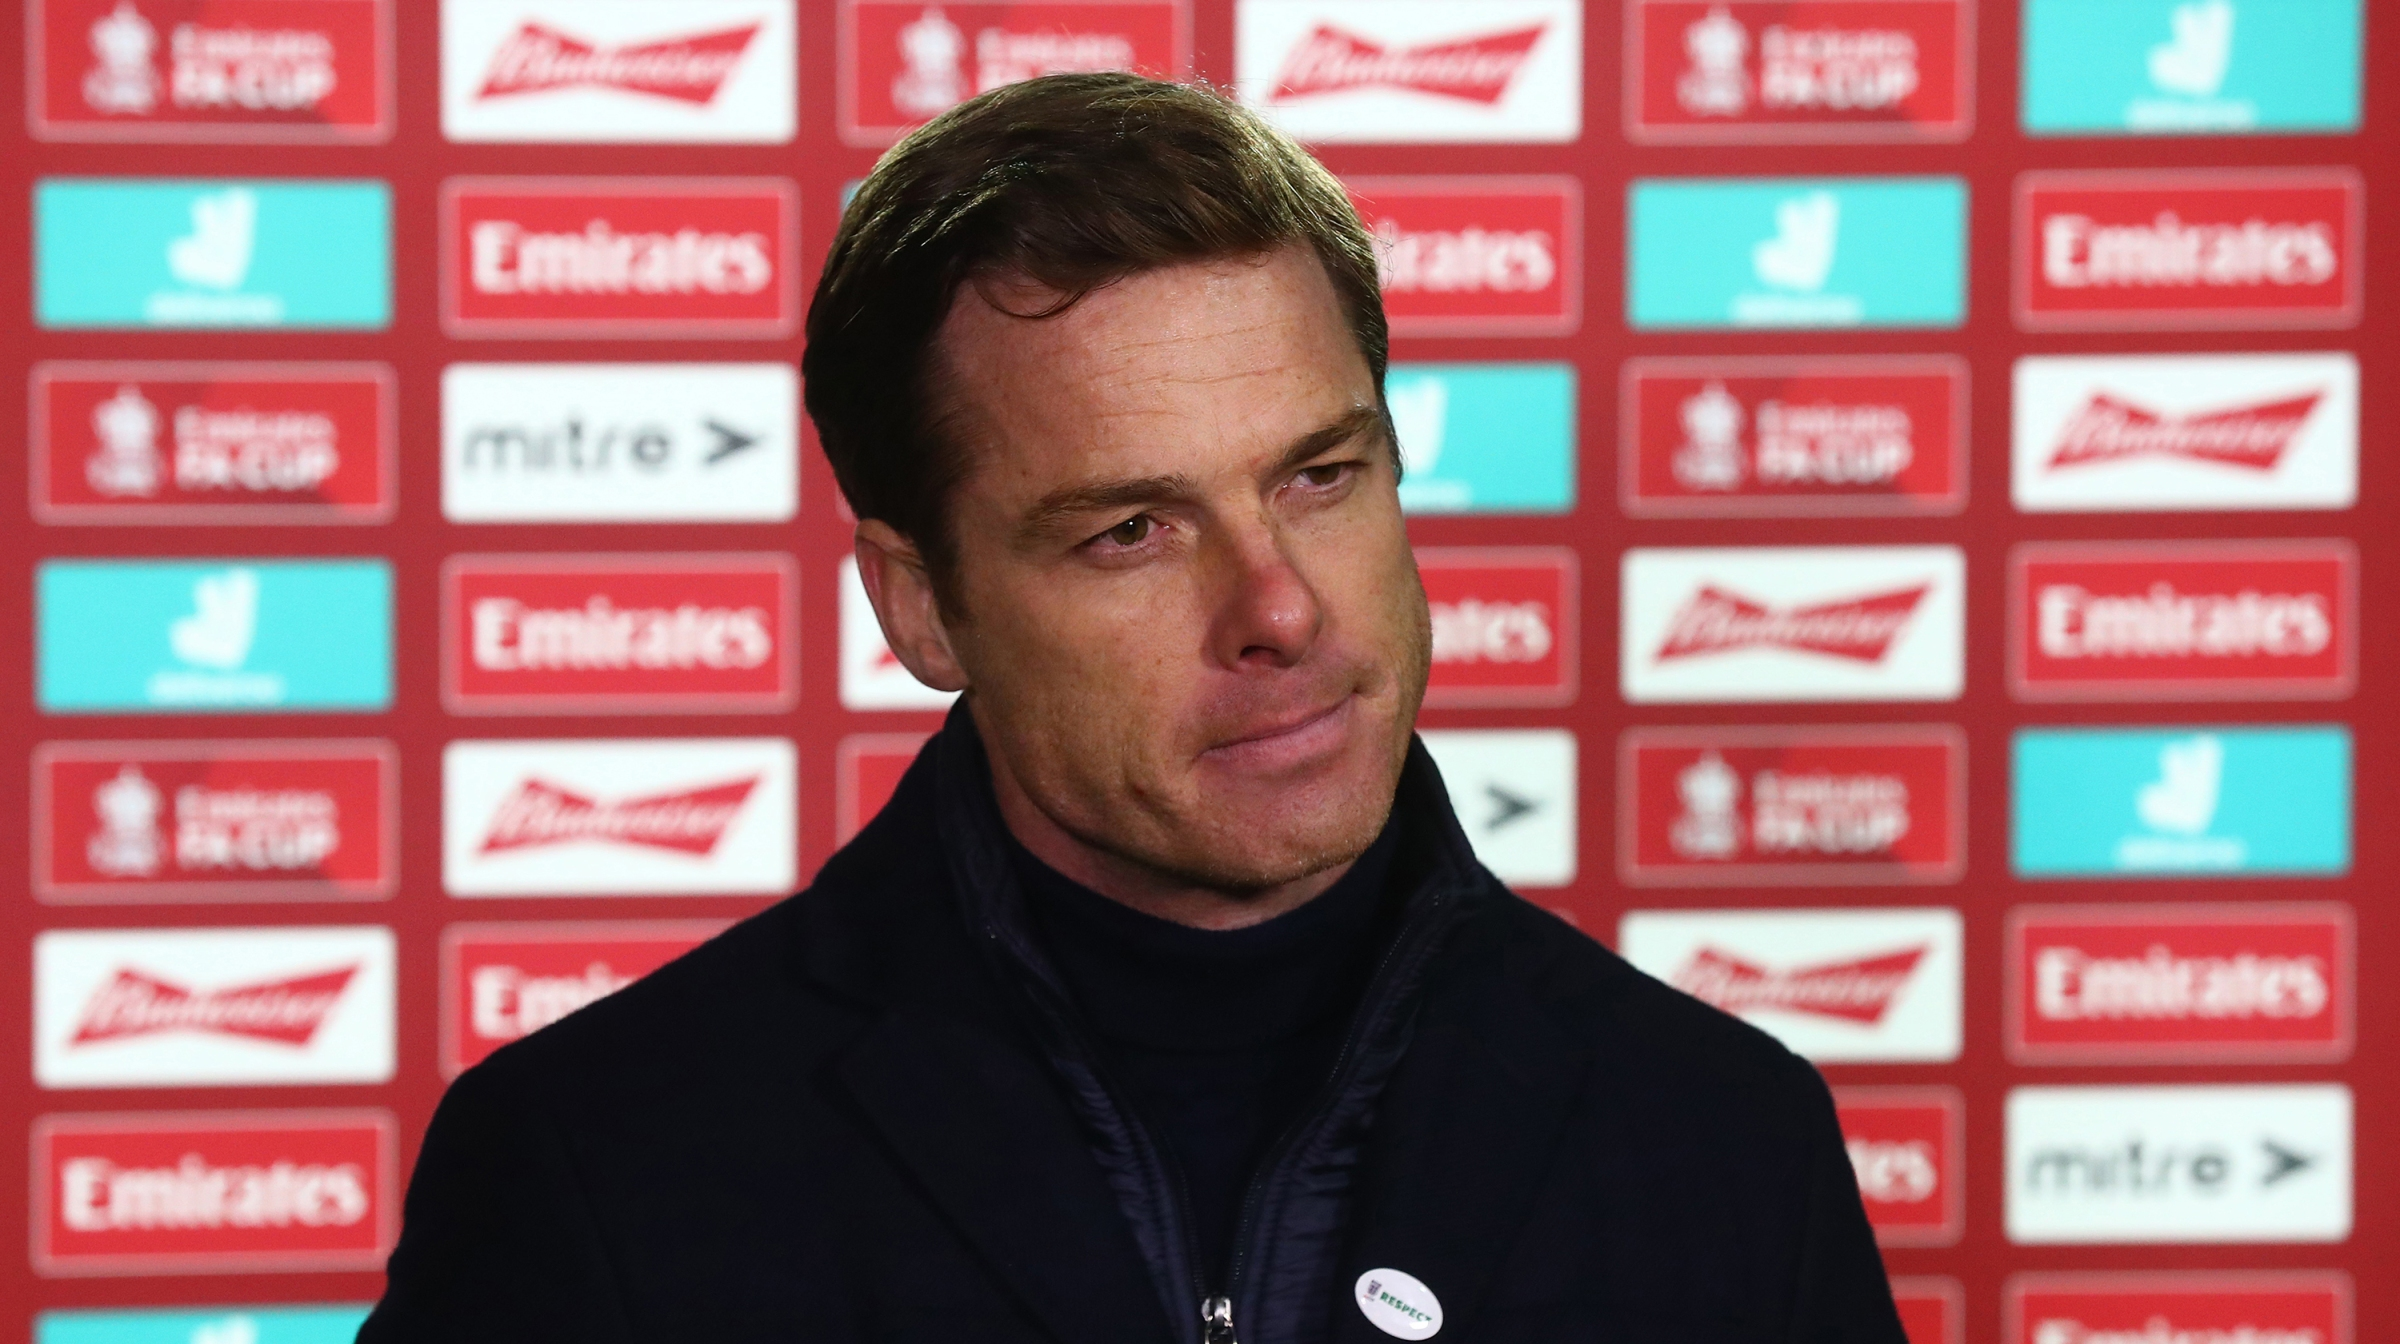 Scott Parker, Manager of Fulham is interviewed after the FA Cup Third Round match between Queens Park Rangers and Fulham at The Kiyan Prince Foundation Stadium on January 09, 2021 in London, England.